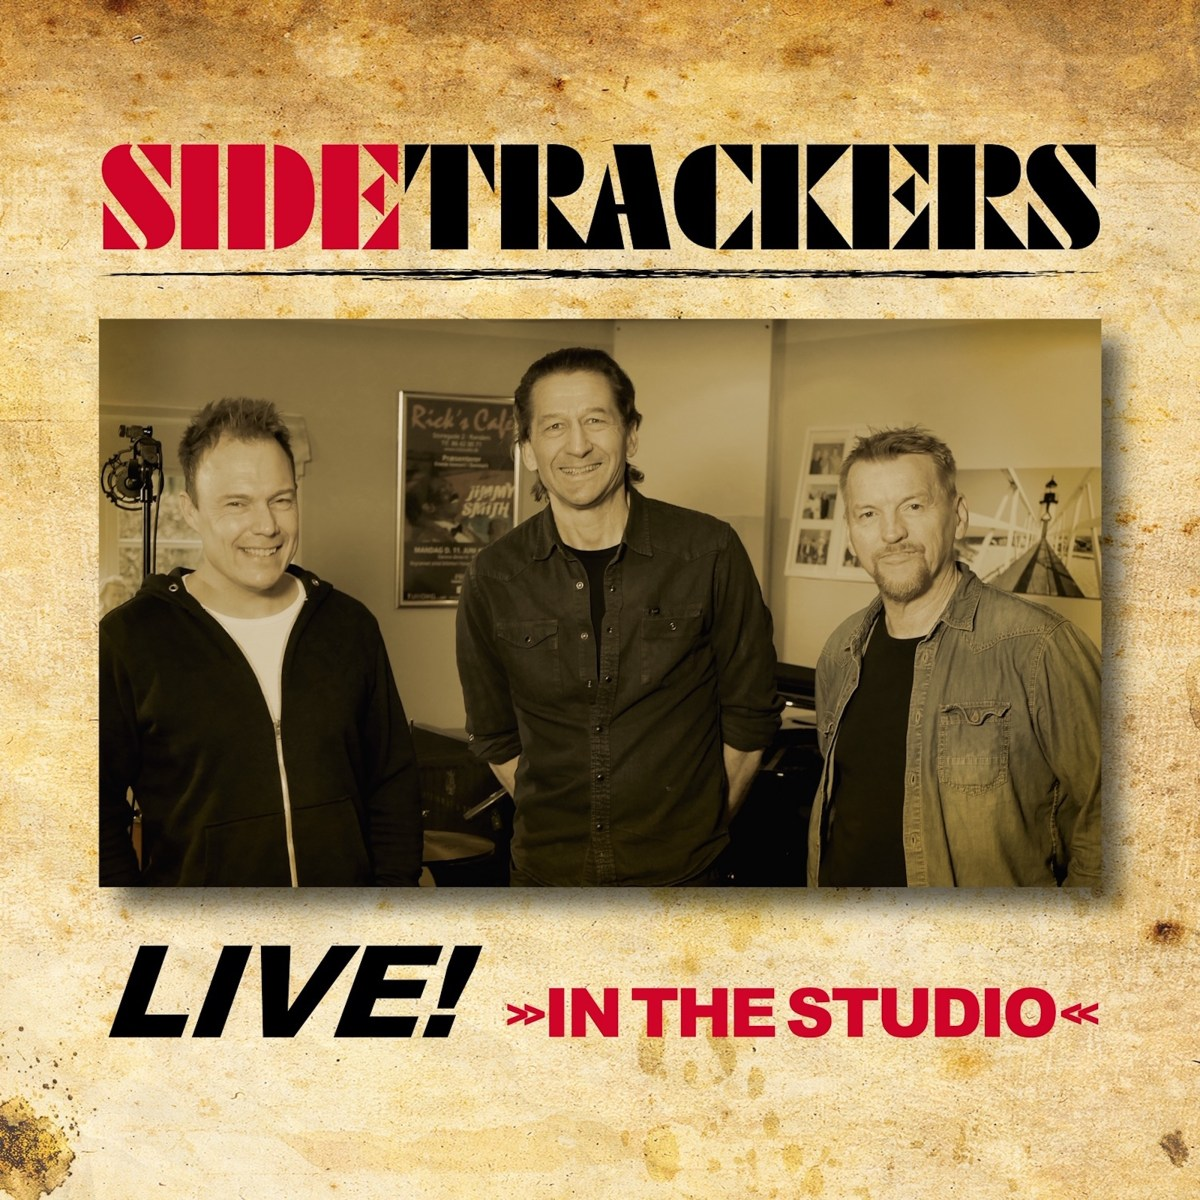 Anmeldelse: Sidetrackers: Live! in the studio (MJ Records)